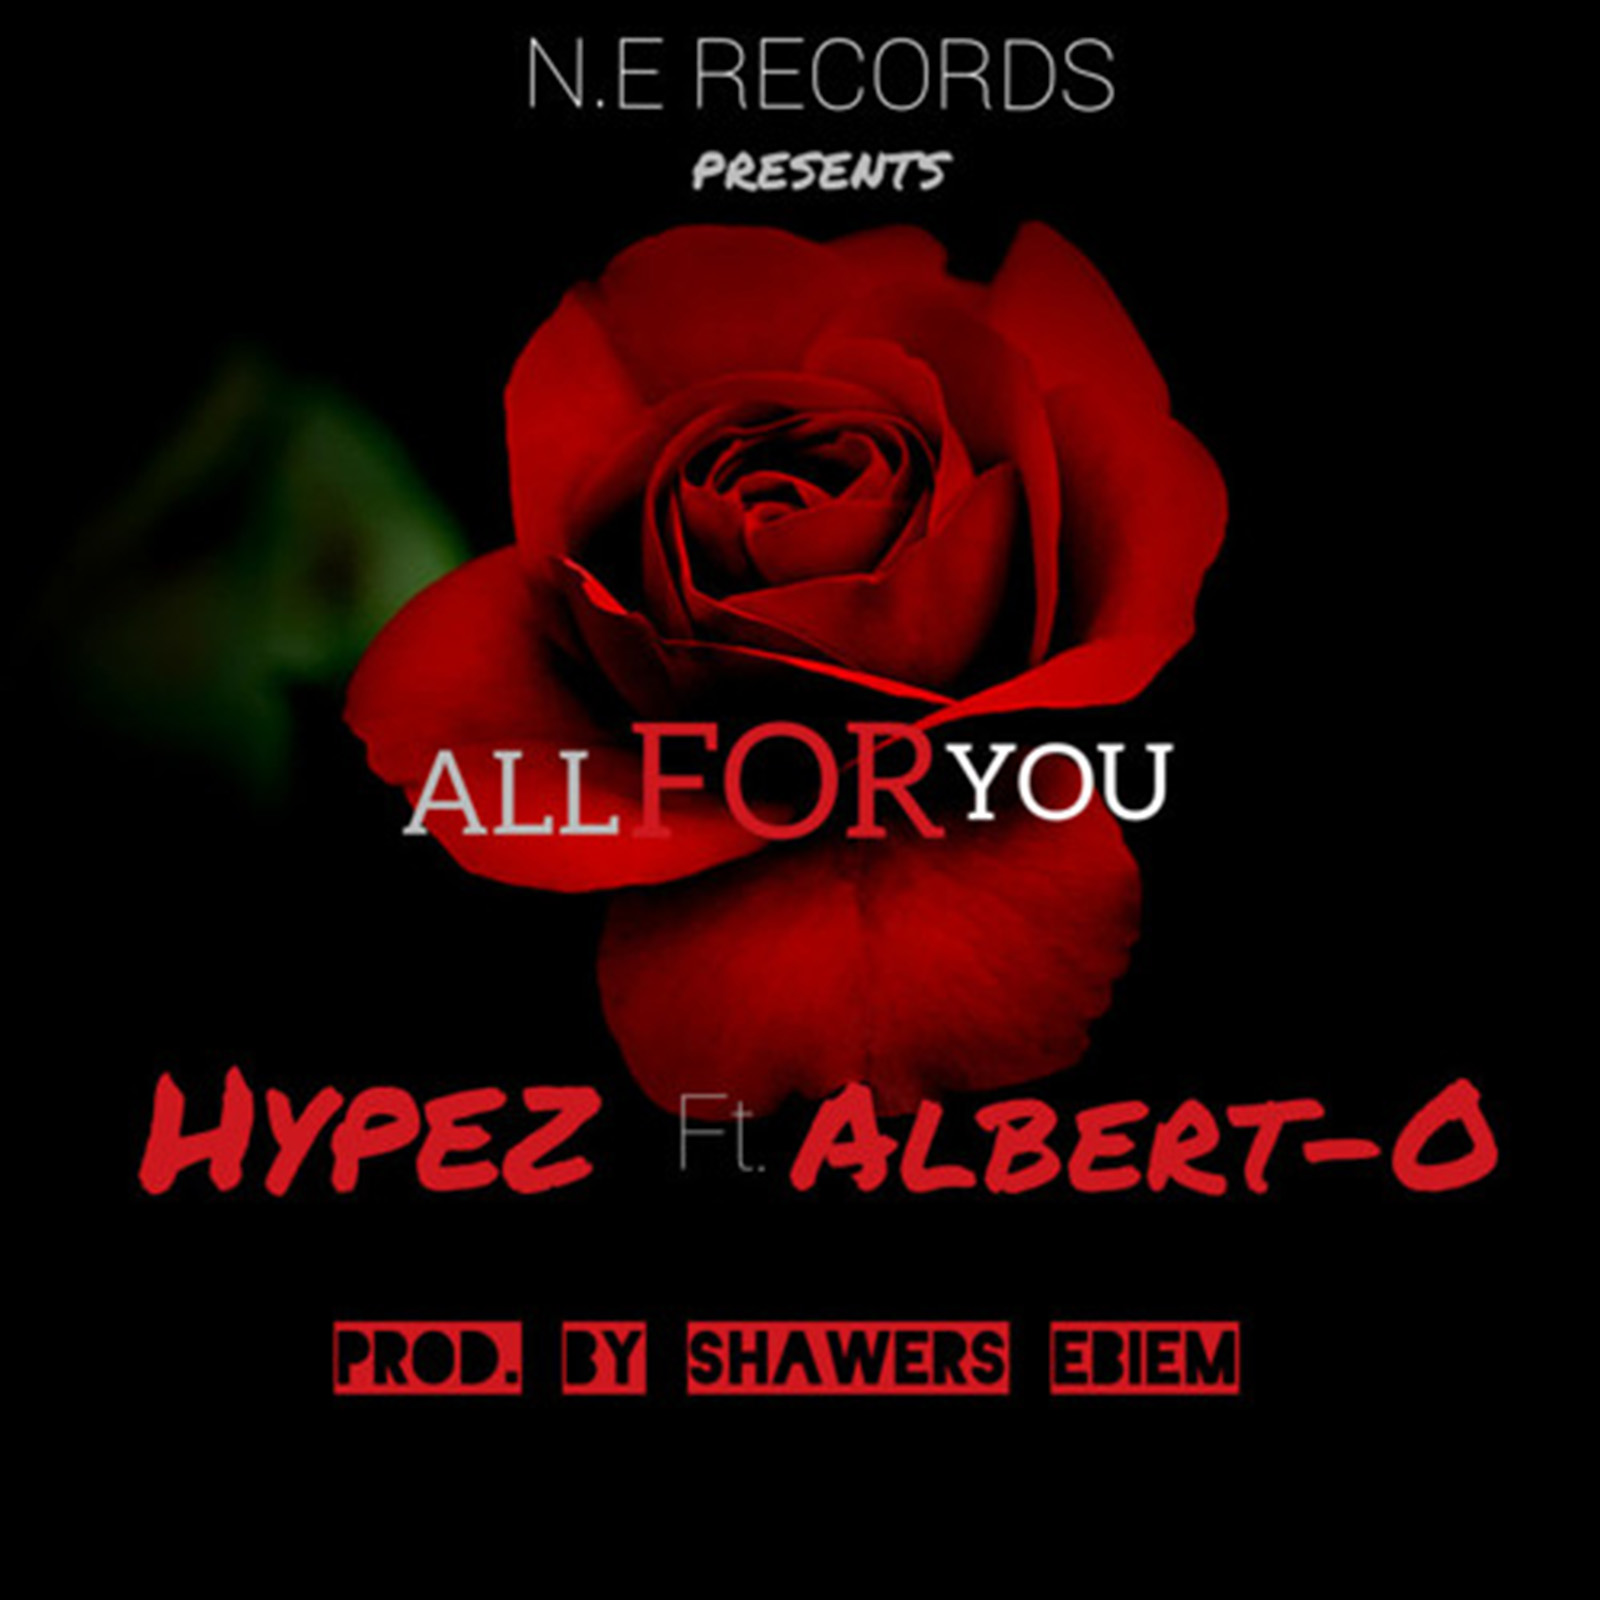 All For You by Hypez feat. Albert-O